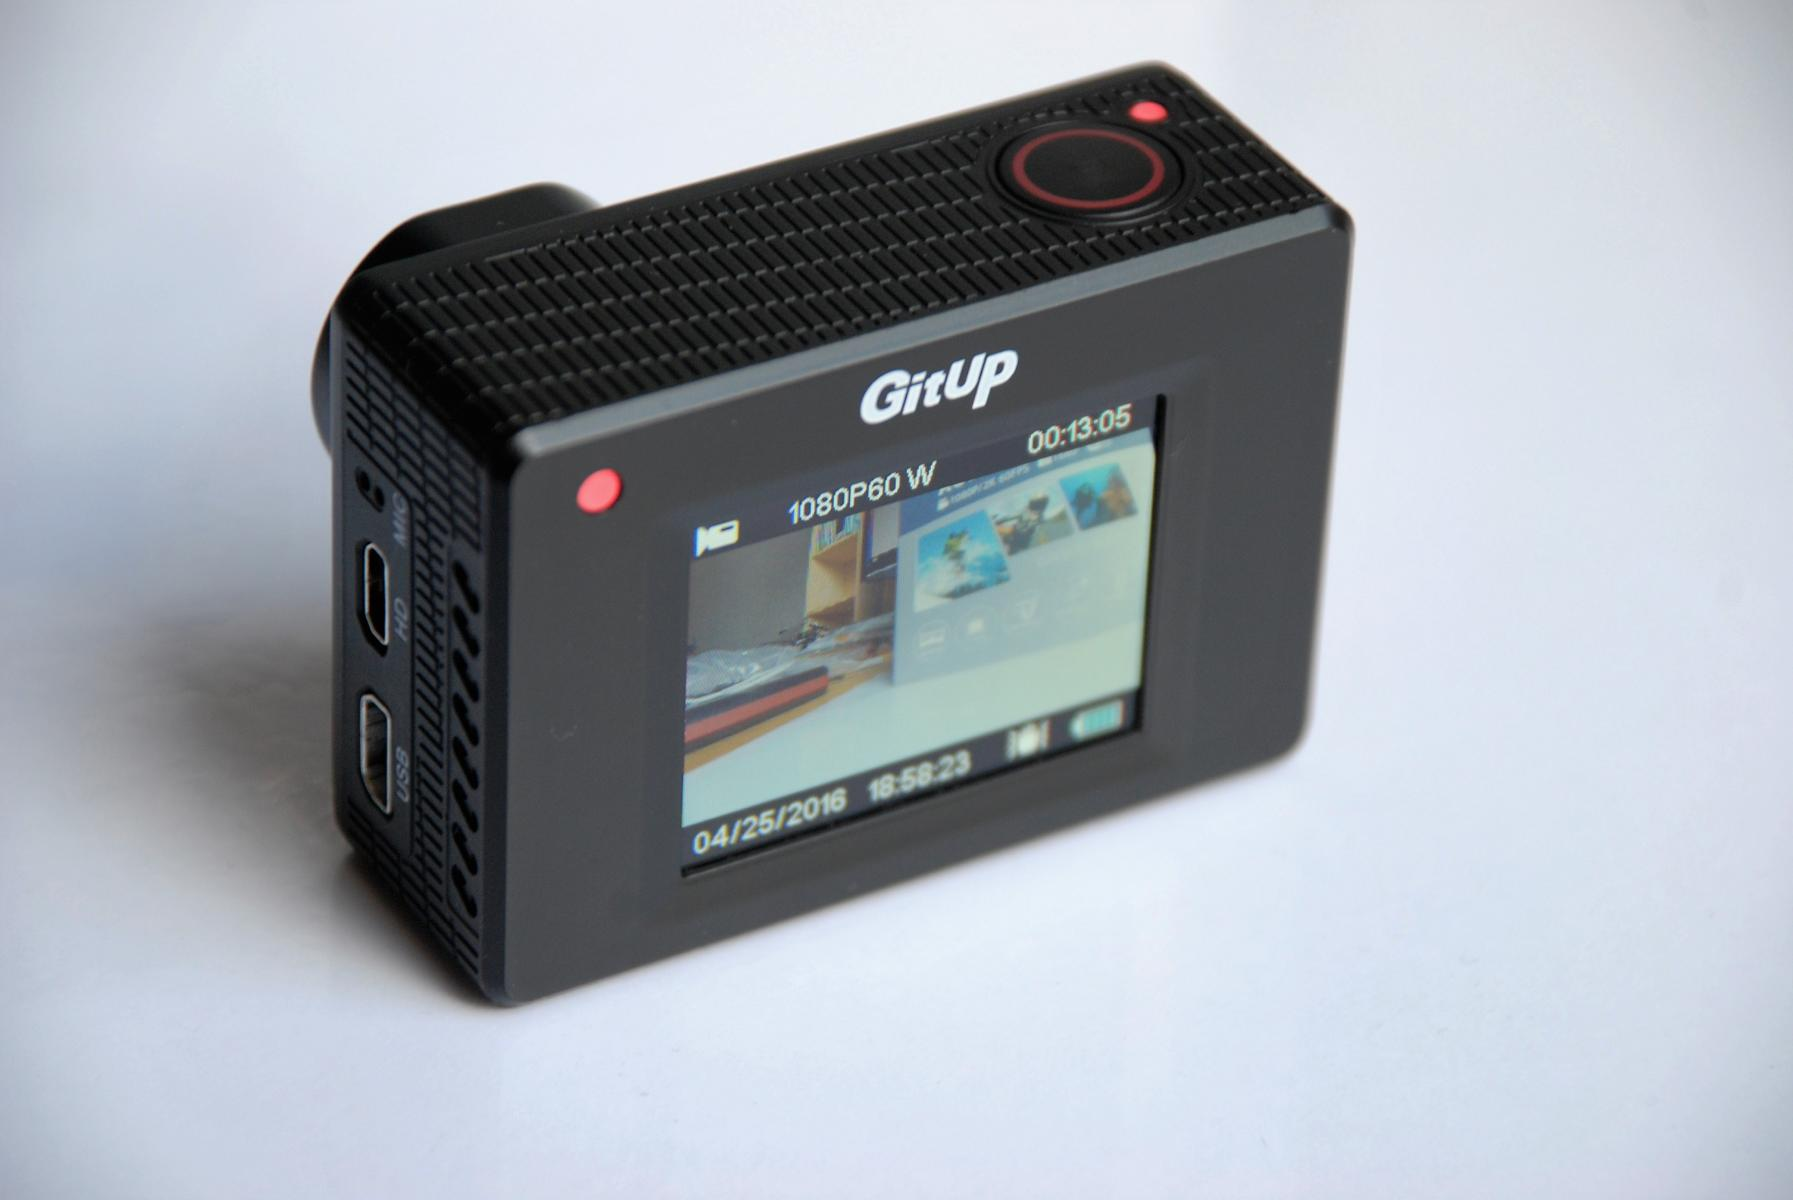 GitUp Git2 Pro Action Camera display turned on, siting on the white desk.